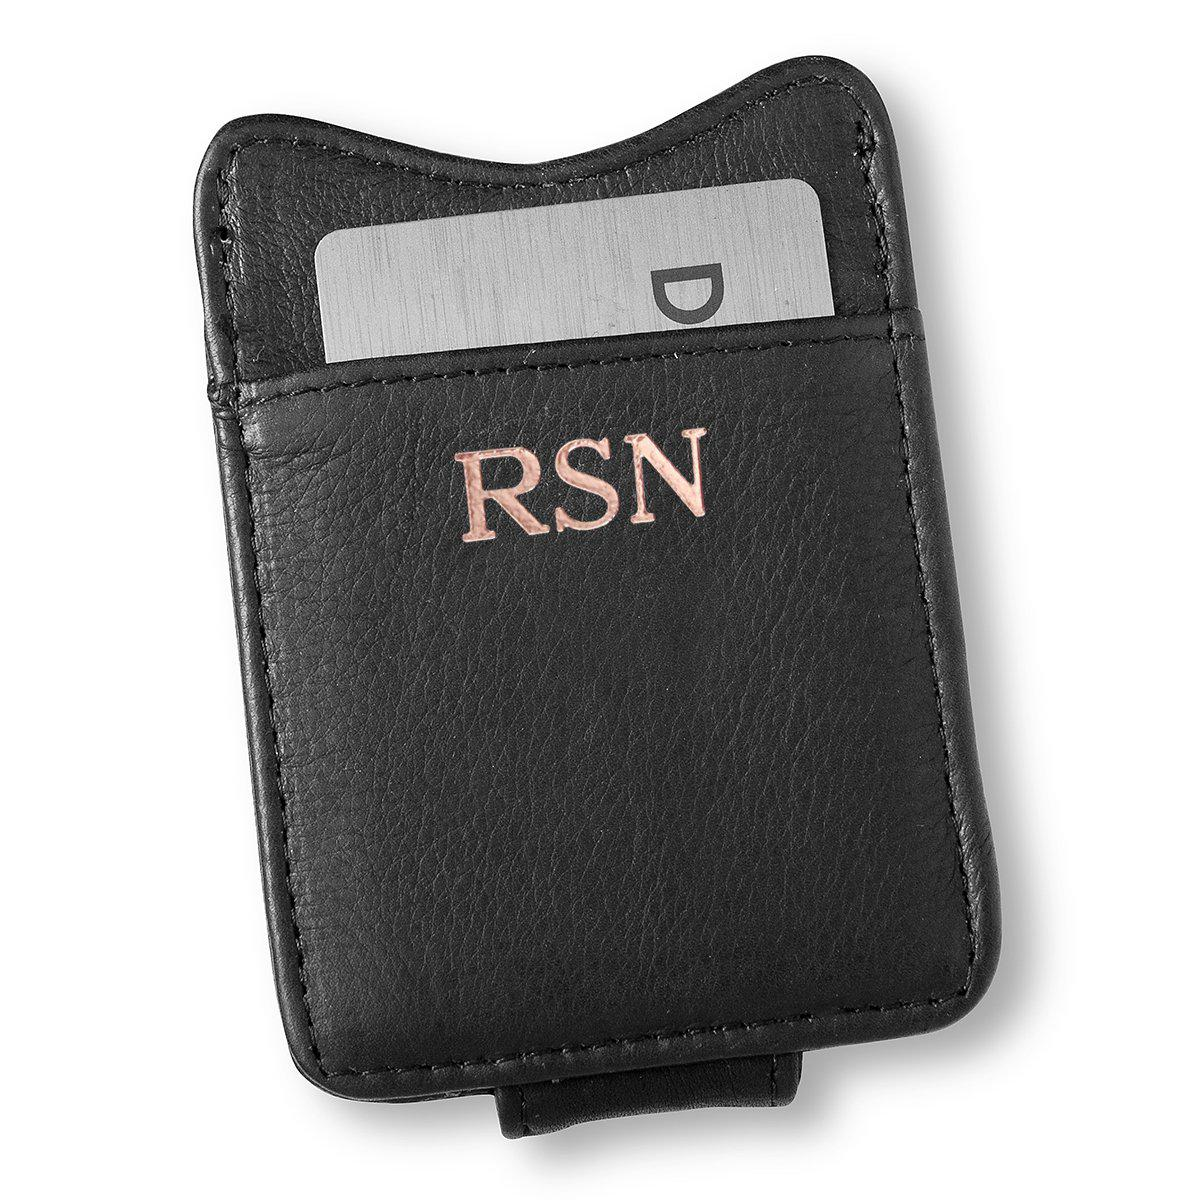 582ad7f510a15 Groomsmen Money Clip Wallets - Personalized Money Clips